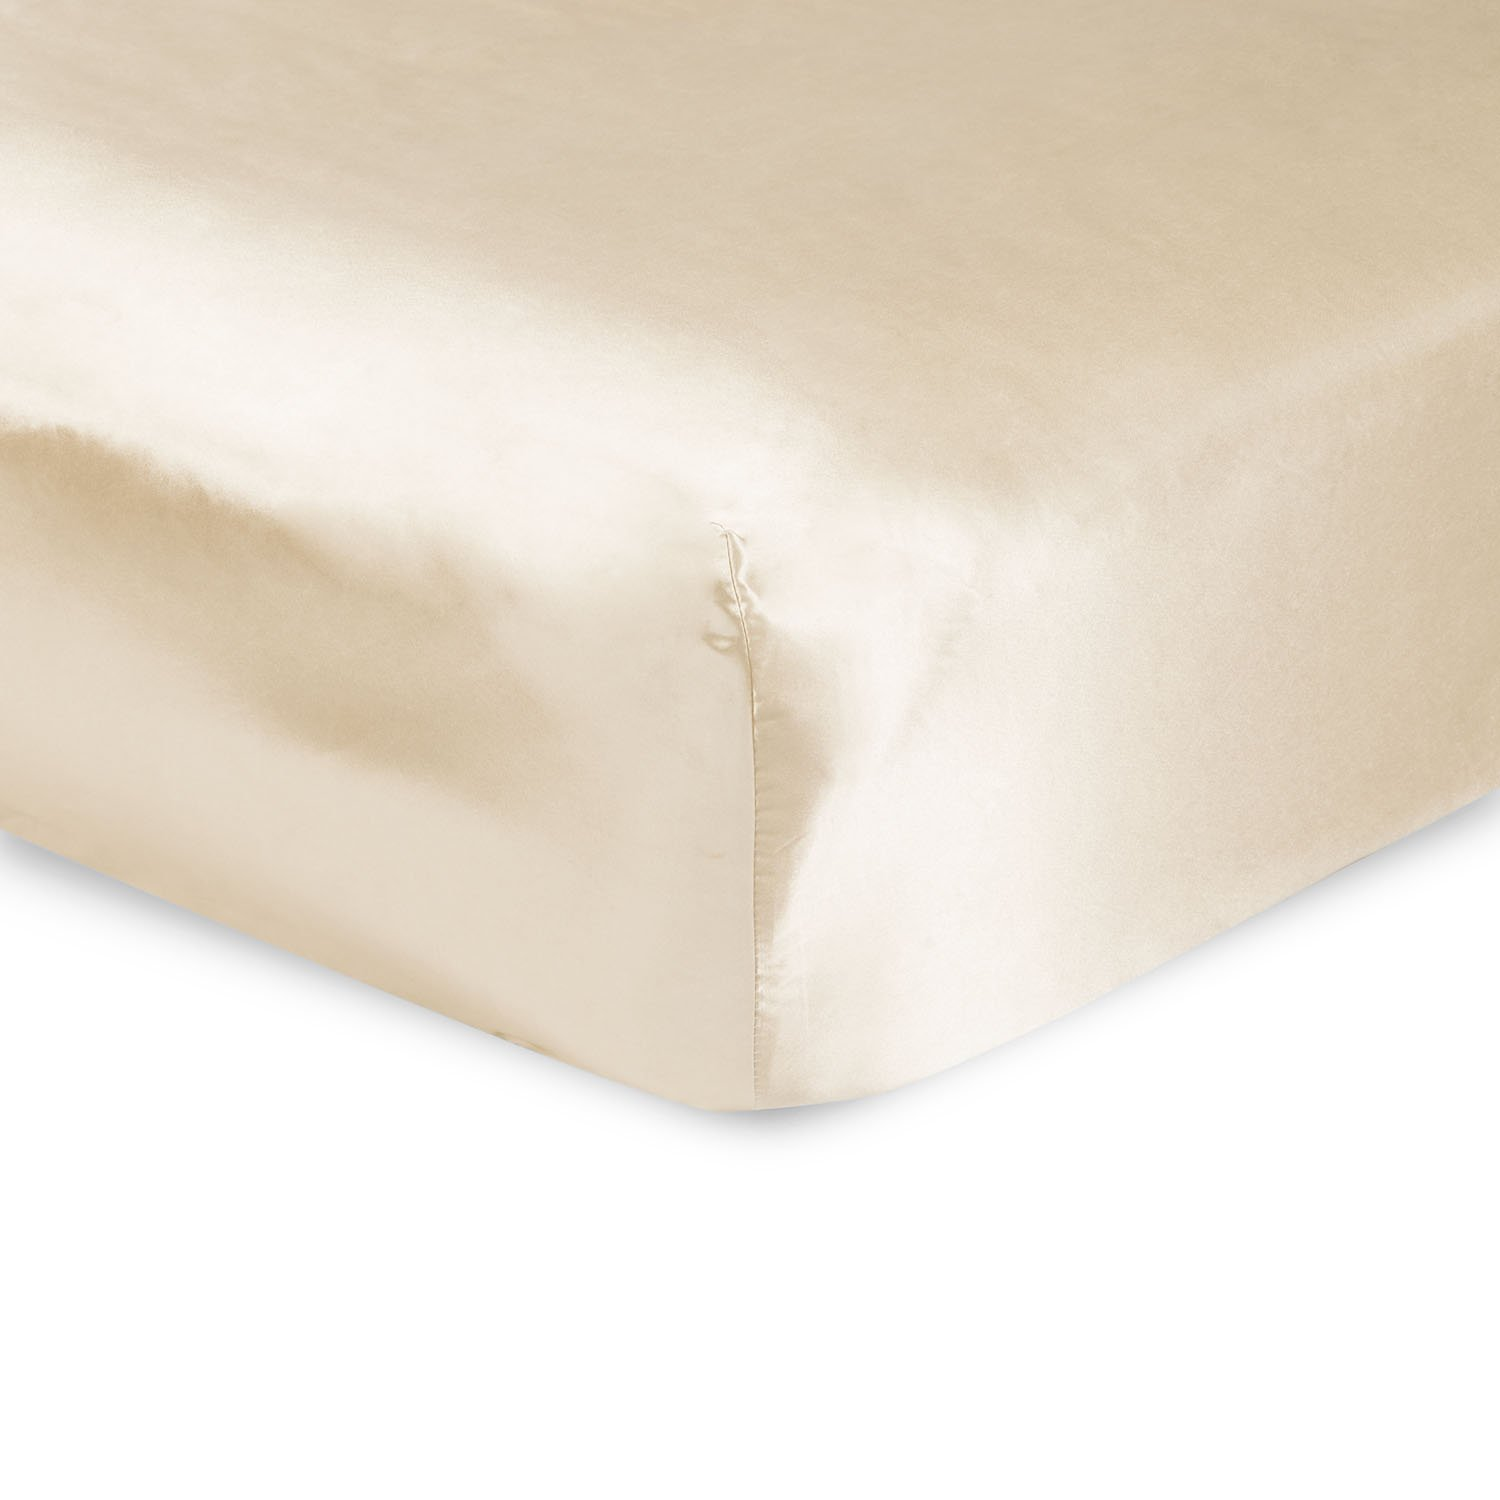 Sweet Dreams Silky Satin Fitted Sheets - Full XL, Ivory, Wrinkle Free and Stain Resistant Super Soft Luxury Satin Bed Sheets with Extra Deep Pockets